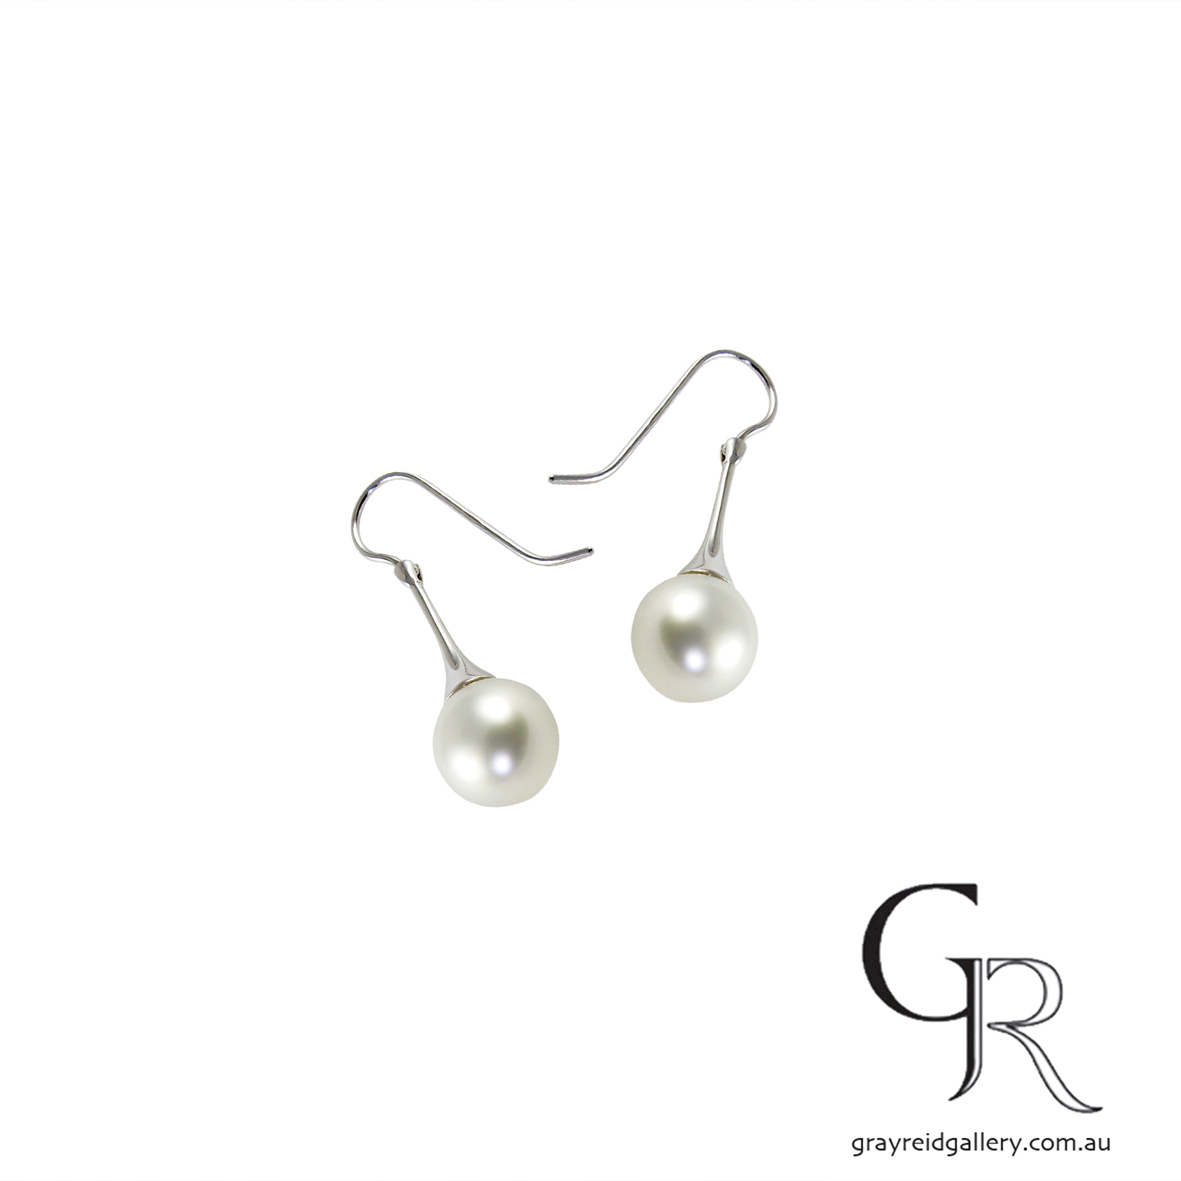 Pearl Earrings With White Gold Shepherd Hooks